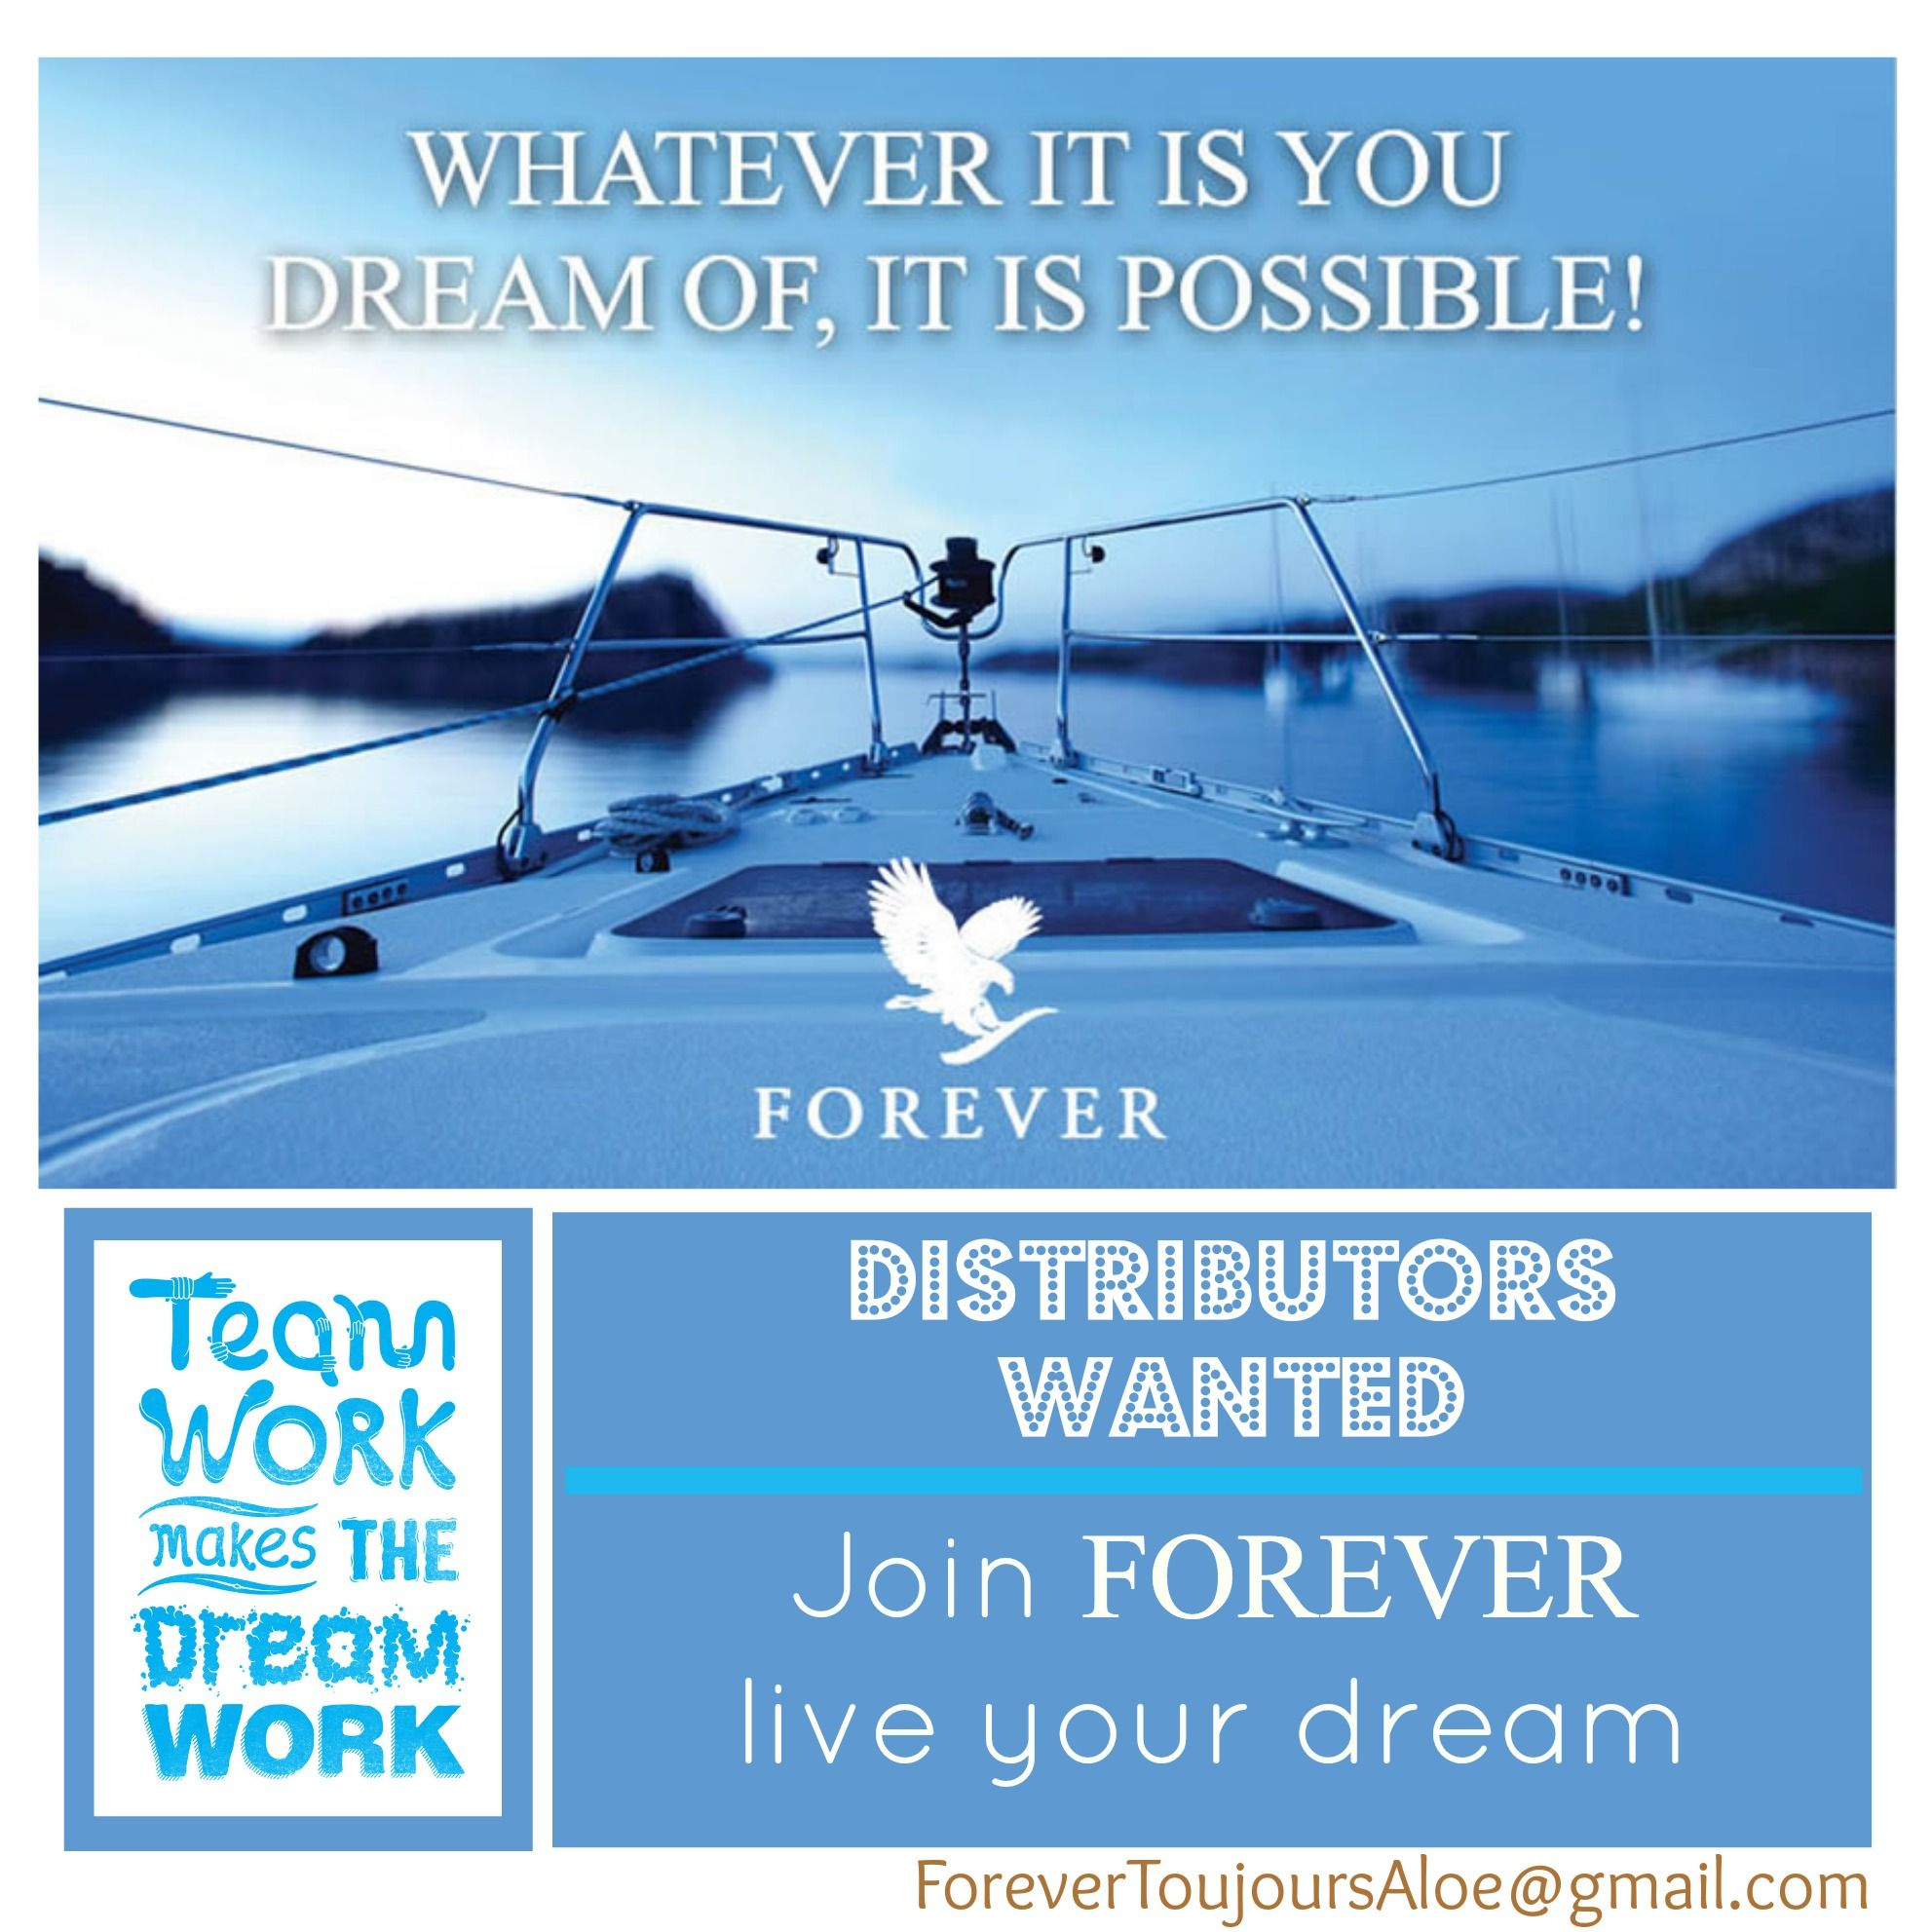 Distributors Wanted! Are you looking for a new job opportunity or an